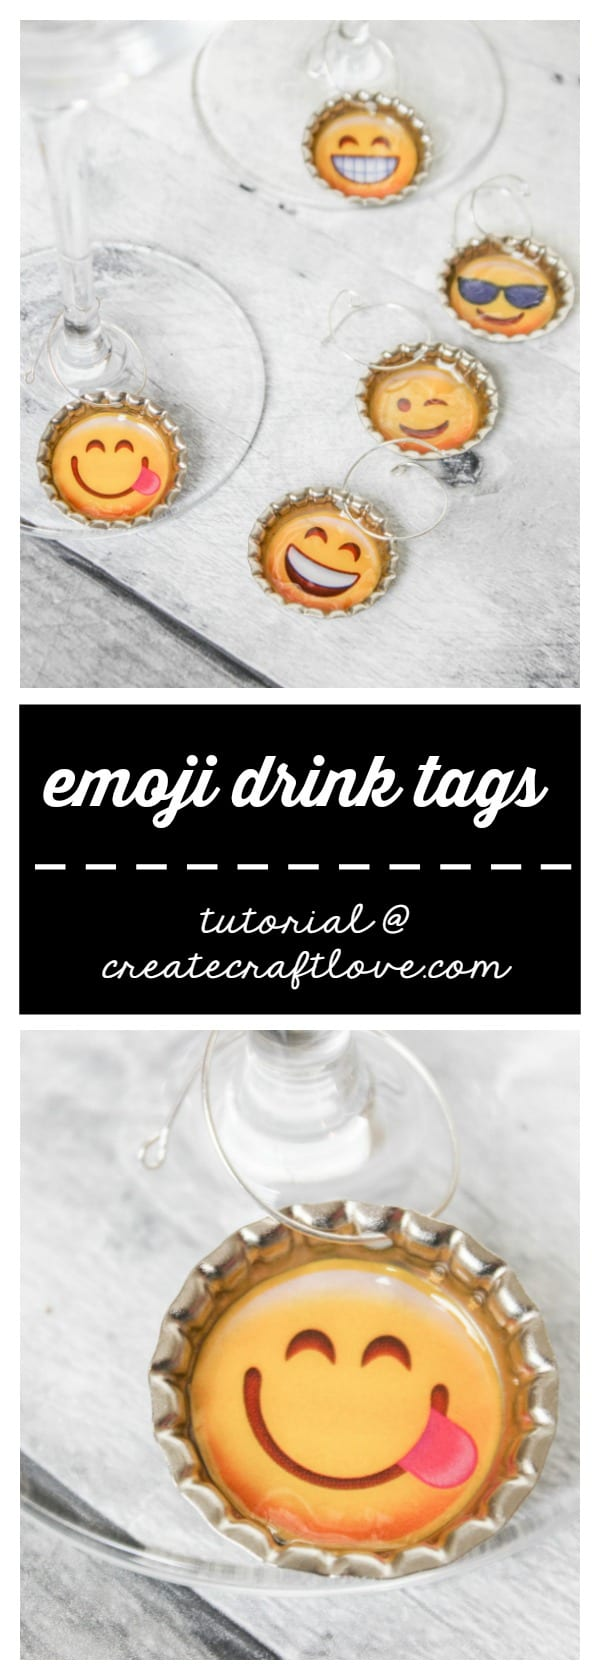 These Emoji Drink Tags add a touch of fun to your wine glass!